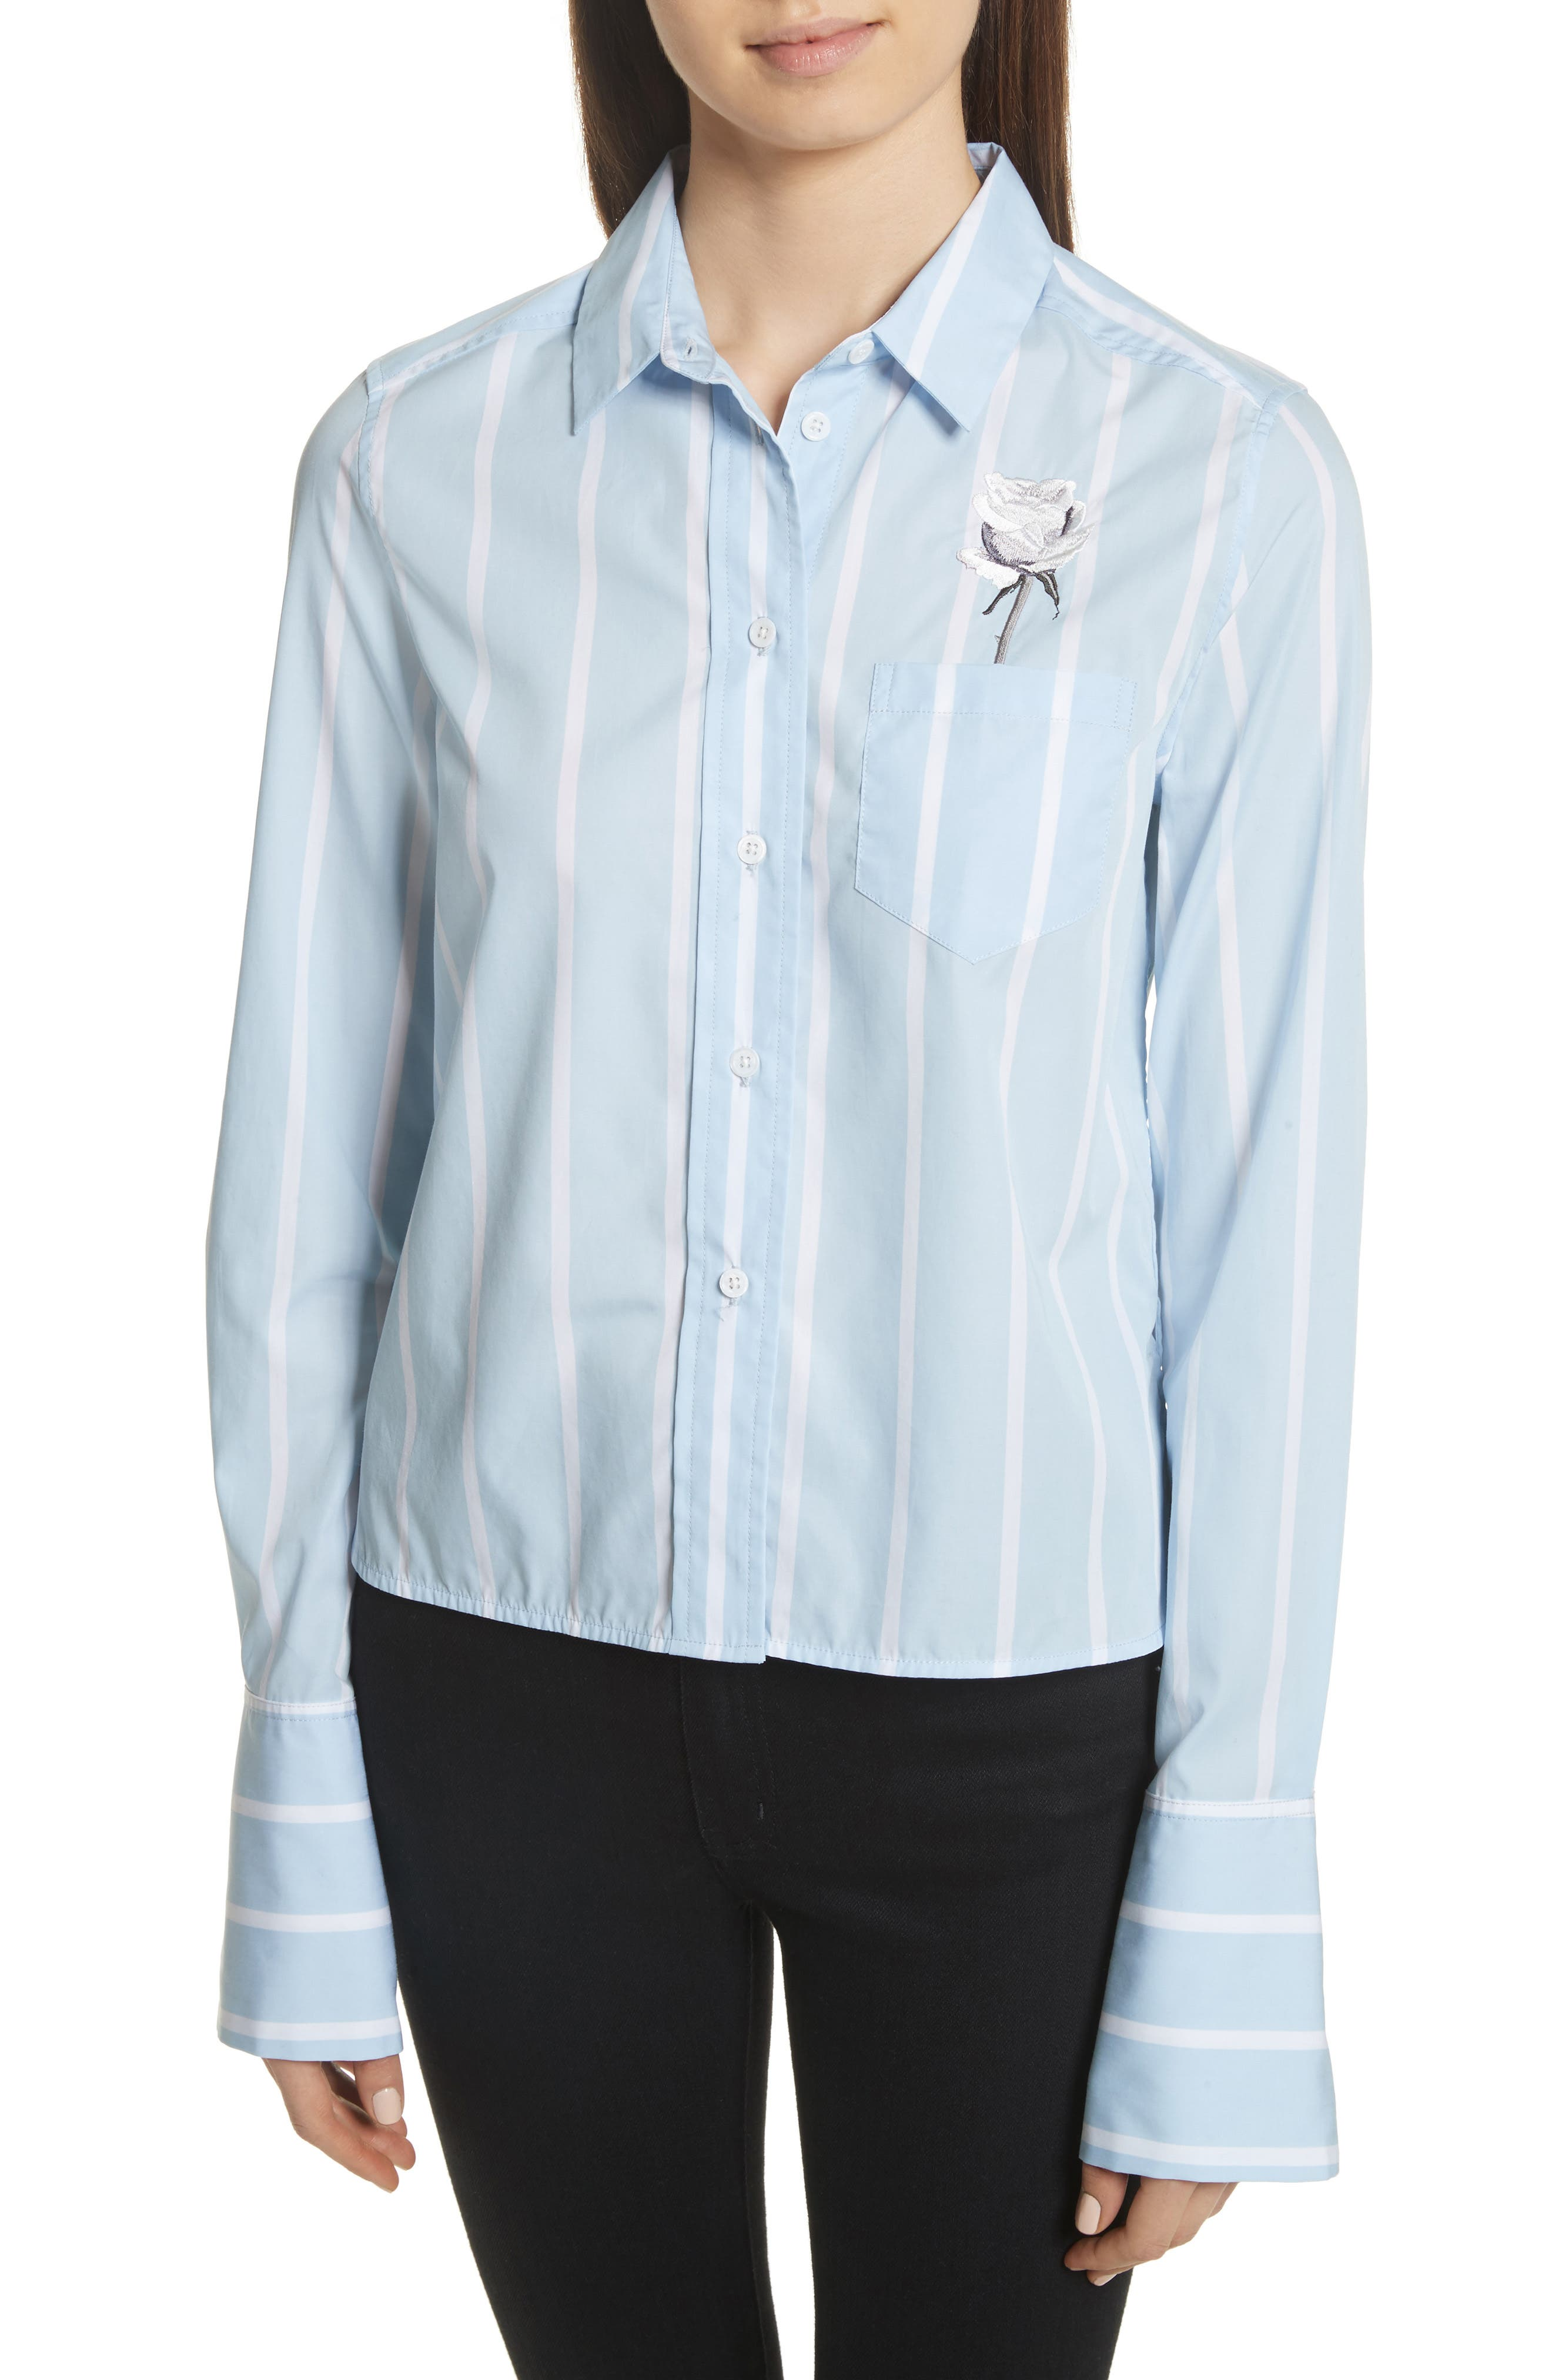 Huntley Embroidered Stripe Cotton Shirt,                             Main thumbnail 1, color,                             Skylight / Bright White